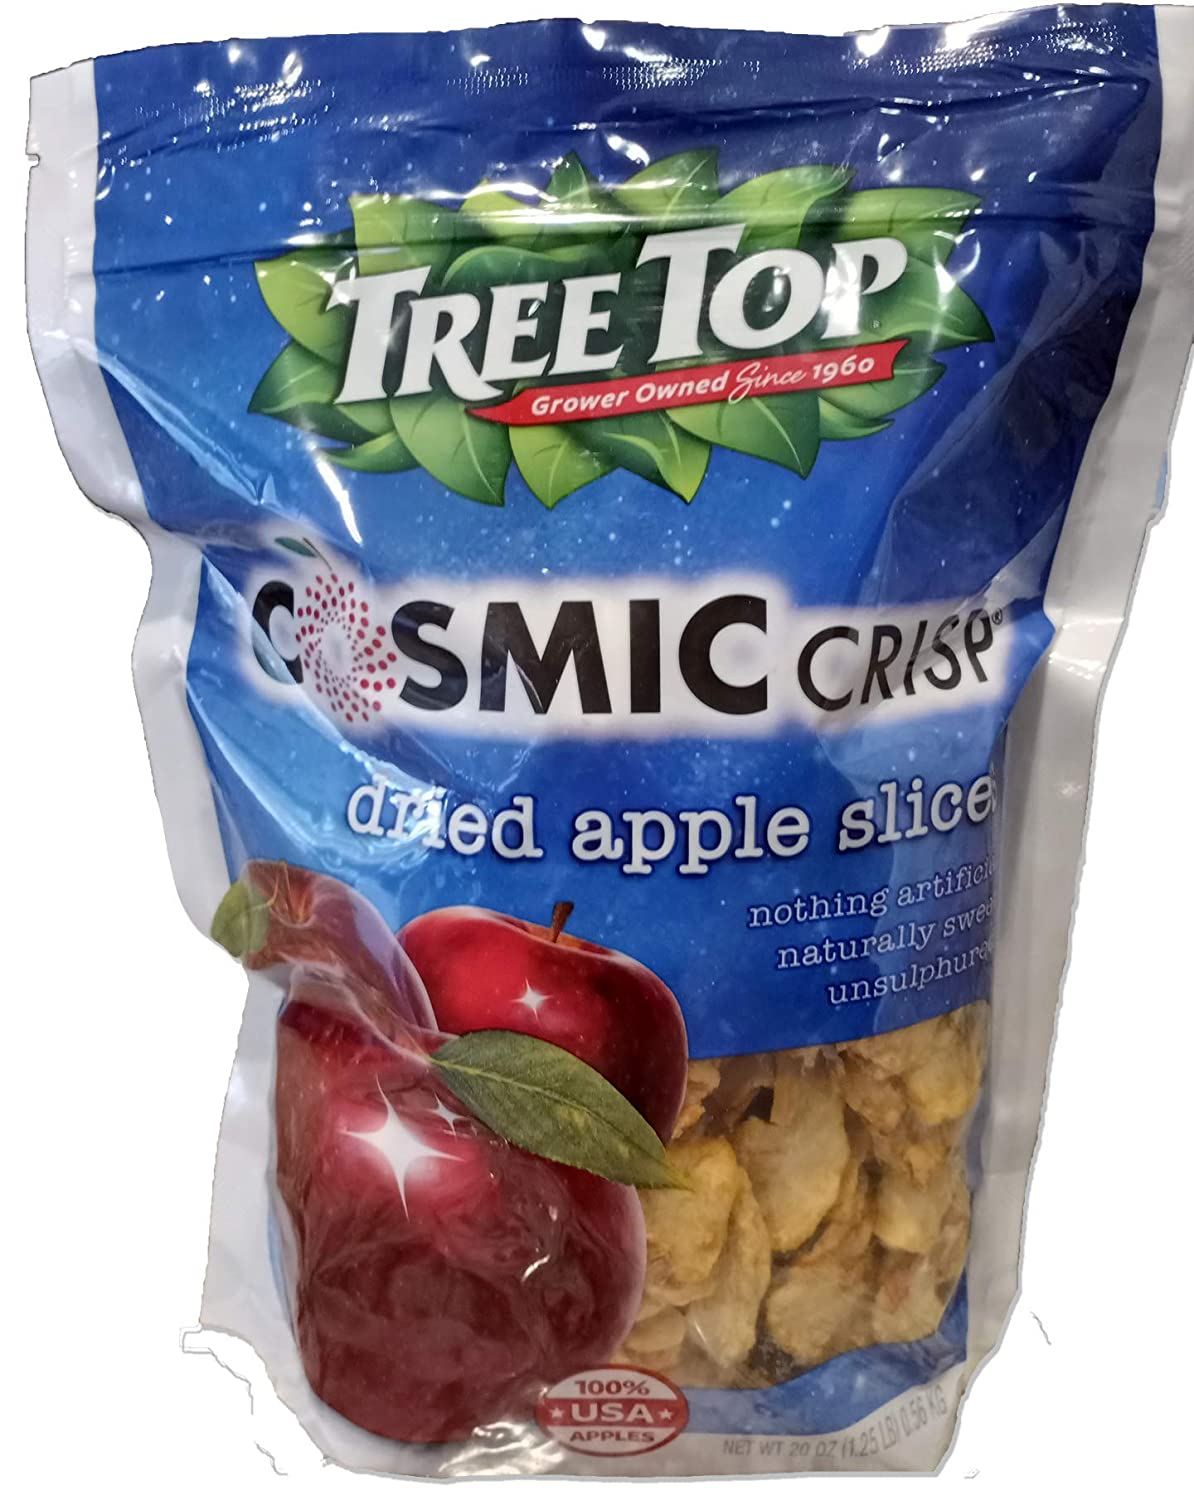 Tree Top Cosmic Crisp - Dried Apple Slices - Made with 100% USA Apples